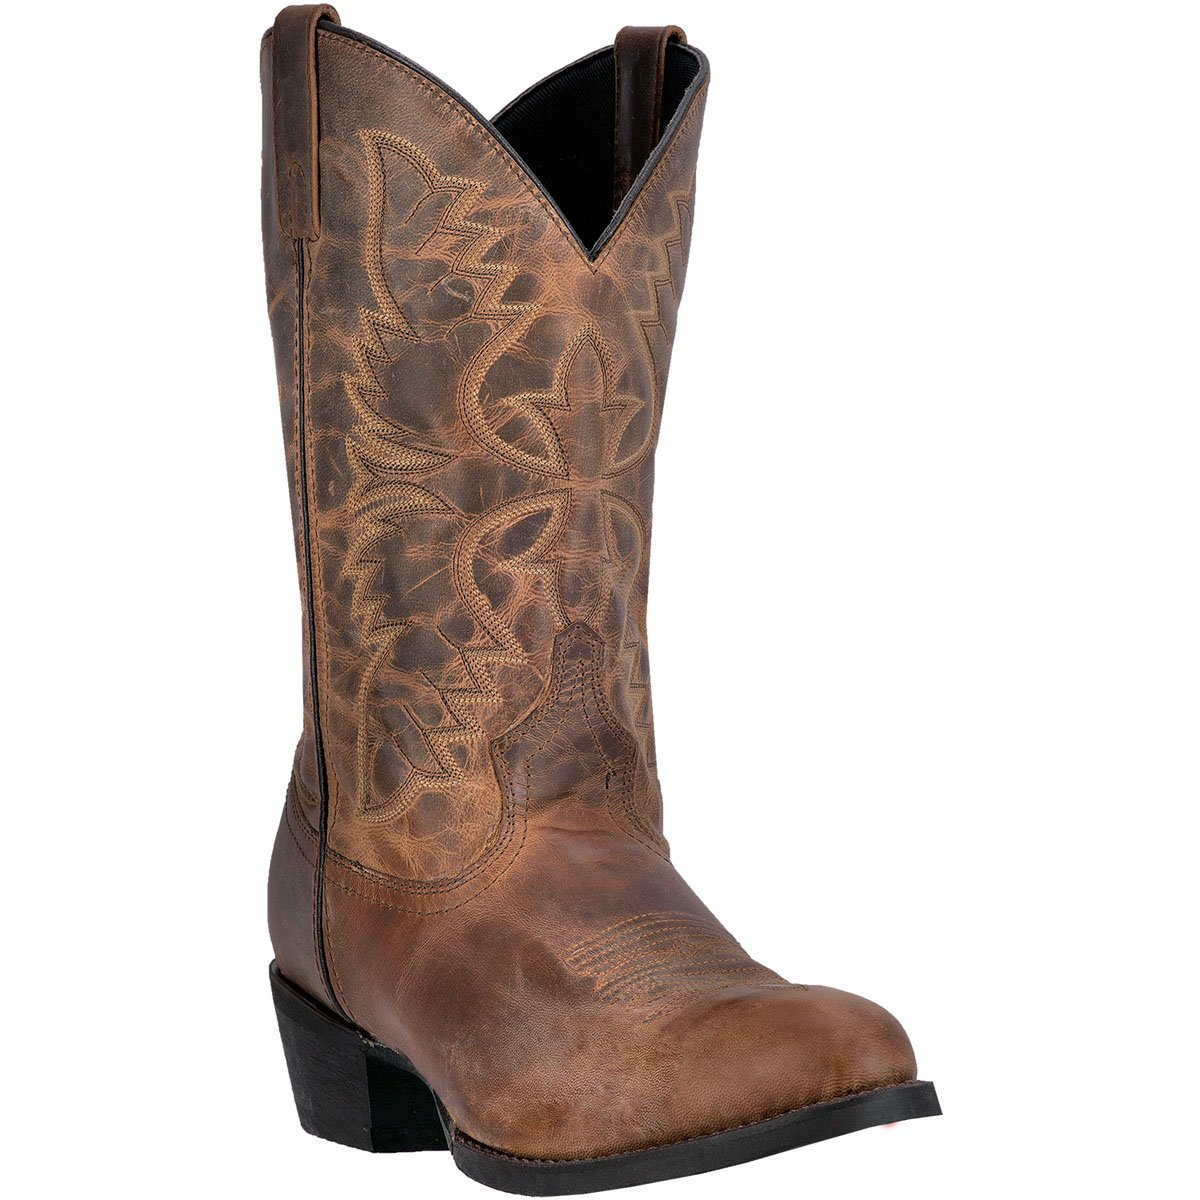 Laredo Men's 12'' Birchwood Western Embroidered Round Toe Cowboy Boots, Tan Leather, 10.5 D